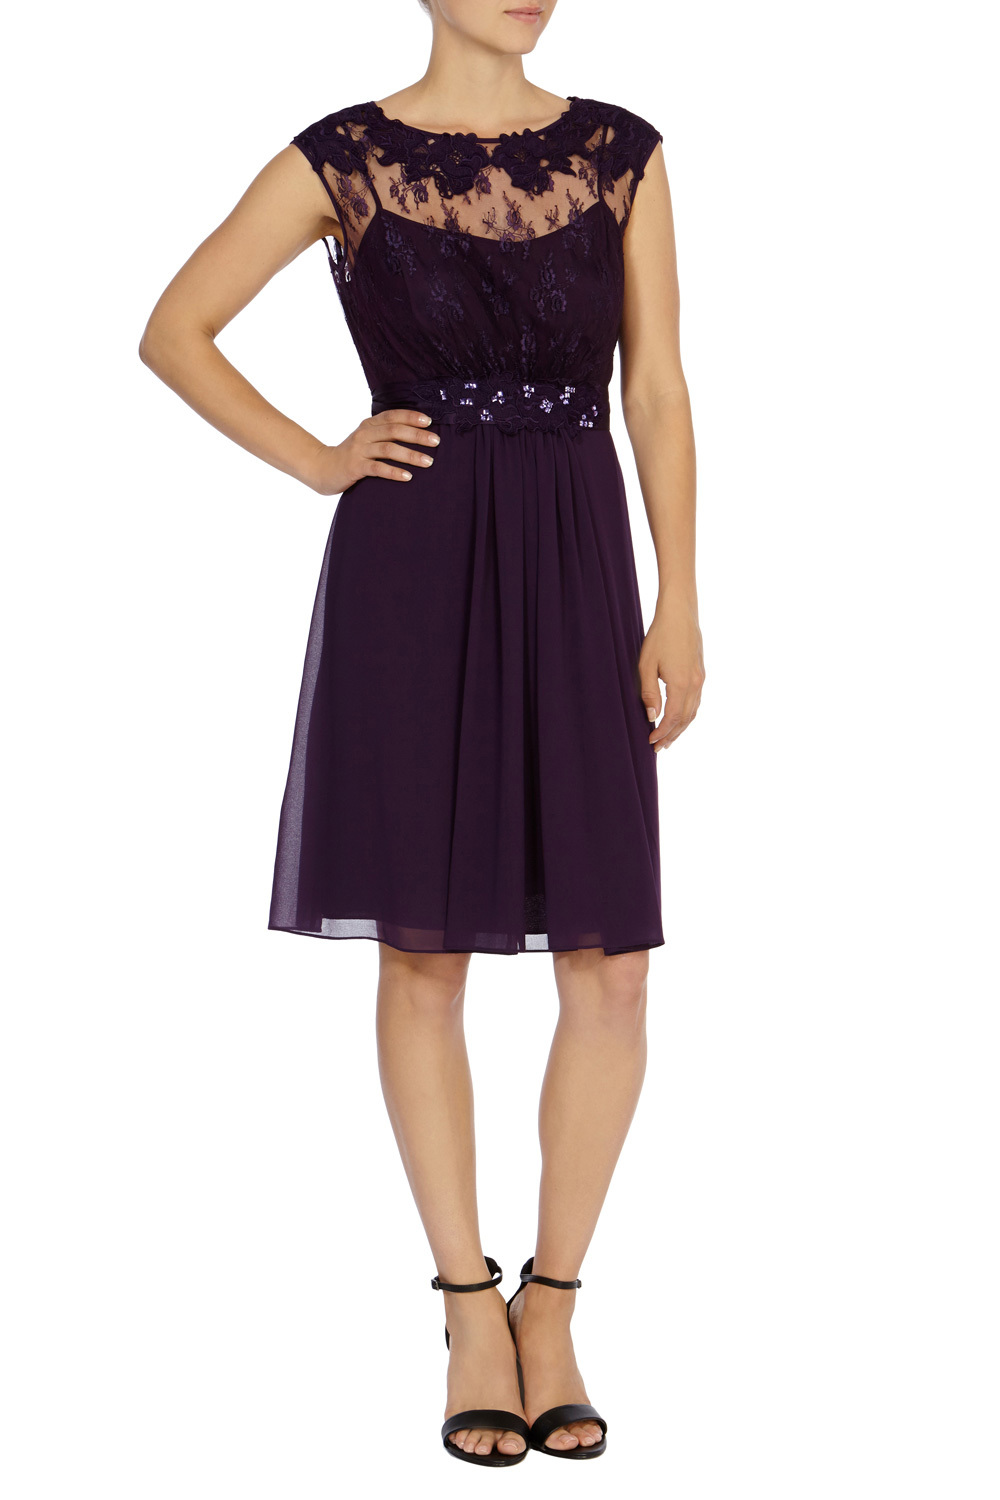 Lori May Short Dress - neckline: round neck; sleeve style: capped; pattern: plain; predominant colour: purple; occasions: evening, occasion; length: on the knee; fit: fitted at waist & bust; style: fit & flare; hip detail: subtle/flattering hip detail; sleeve length: sleeveless; texture group: sheer fabrics/chiffon/organza etc.; pattern type: fabric; shoulder detail: sheer at shoulder; season: s/s 2015; wardrobe: event